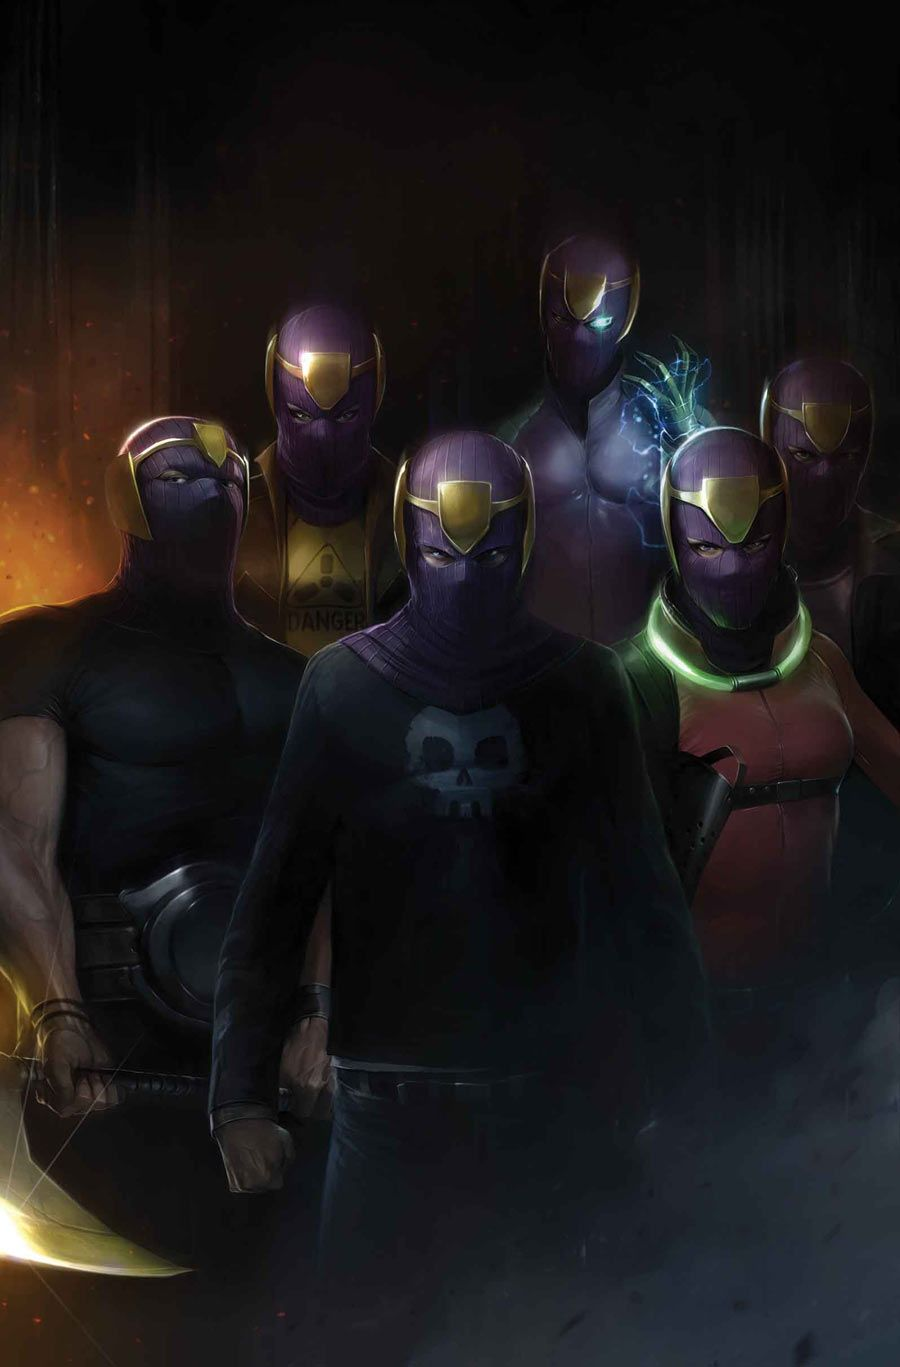 """Images for : """"Original Sin"""" Debuts, Thanos Returns in Marvel's May 2014 Solicitations - Comic Book Resources"""